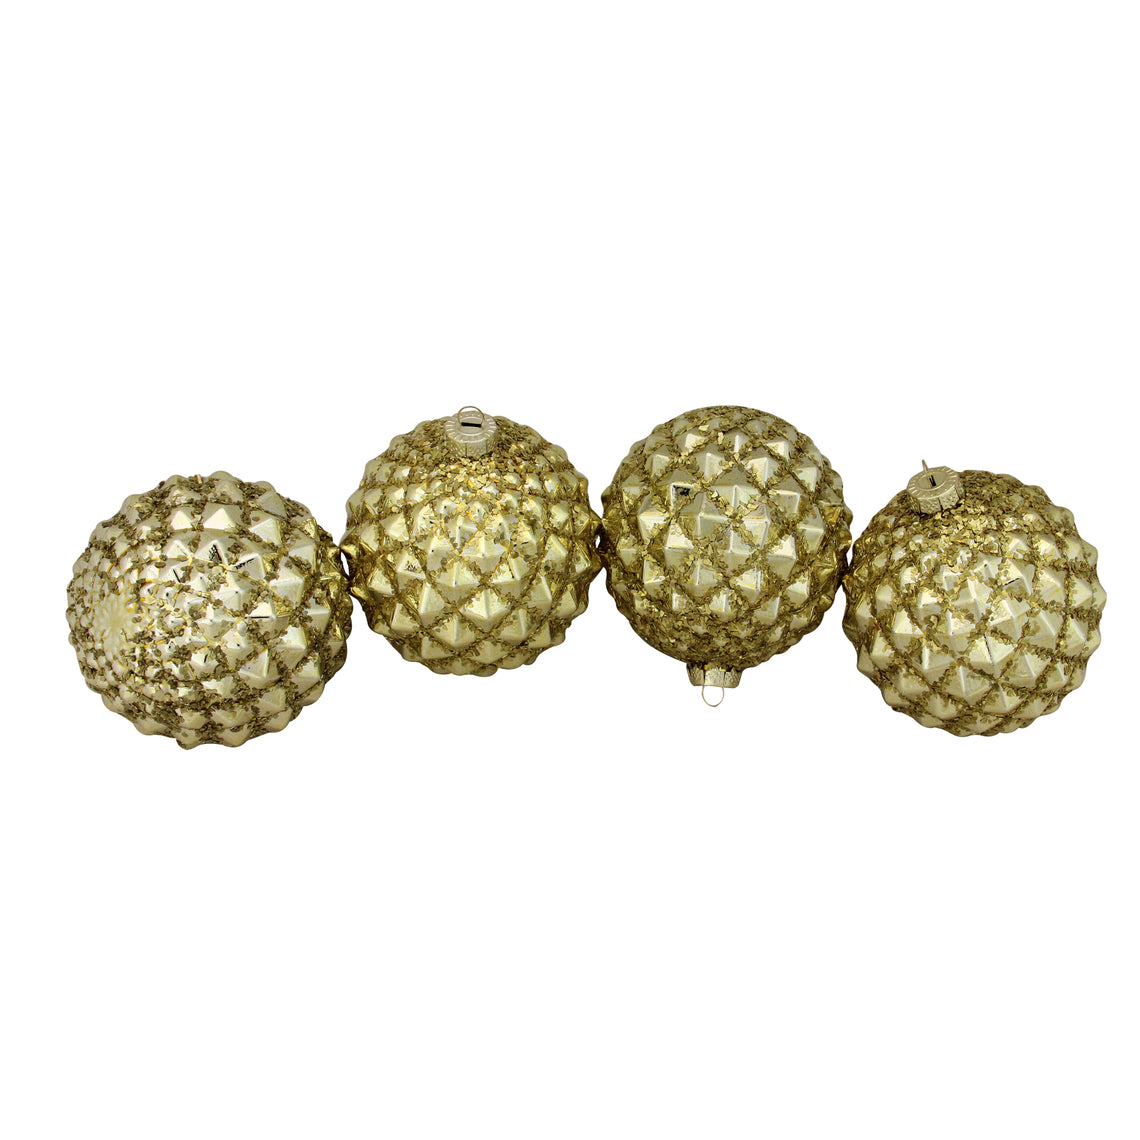 4ct Gold Glitter Flake Christmas Glass Ball Ornaments 4